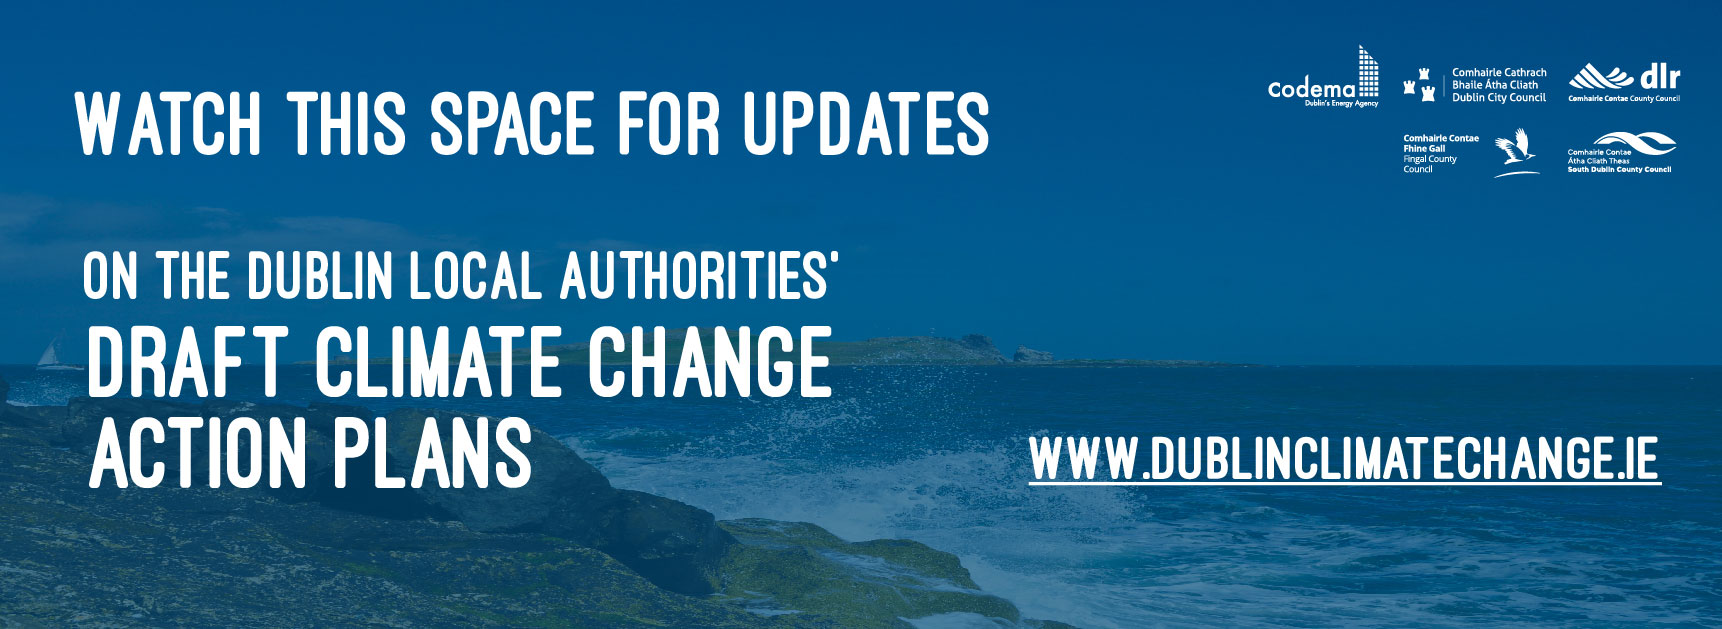 The Dublin Local Authorities' Draft Climate Change Action Plans